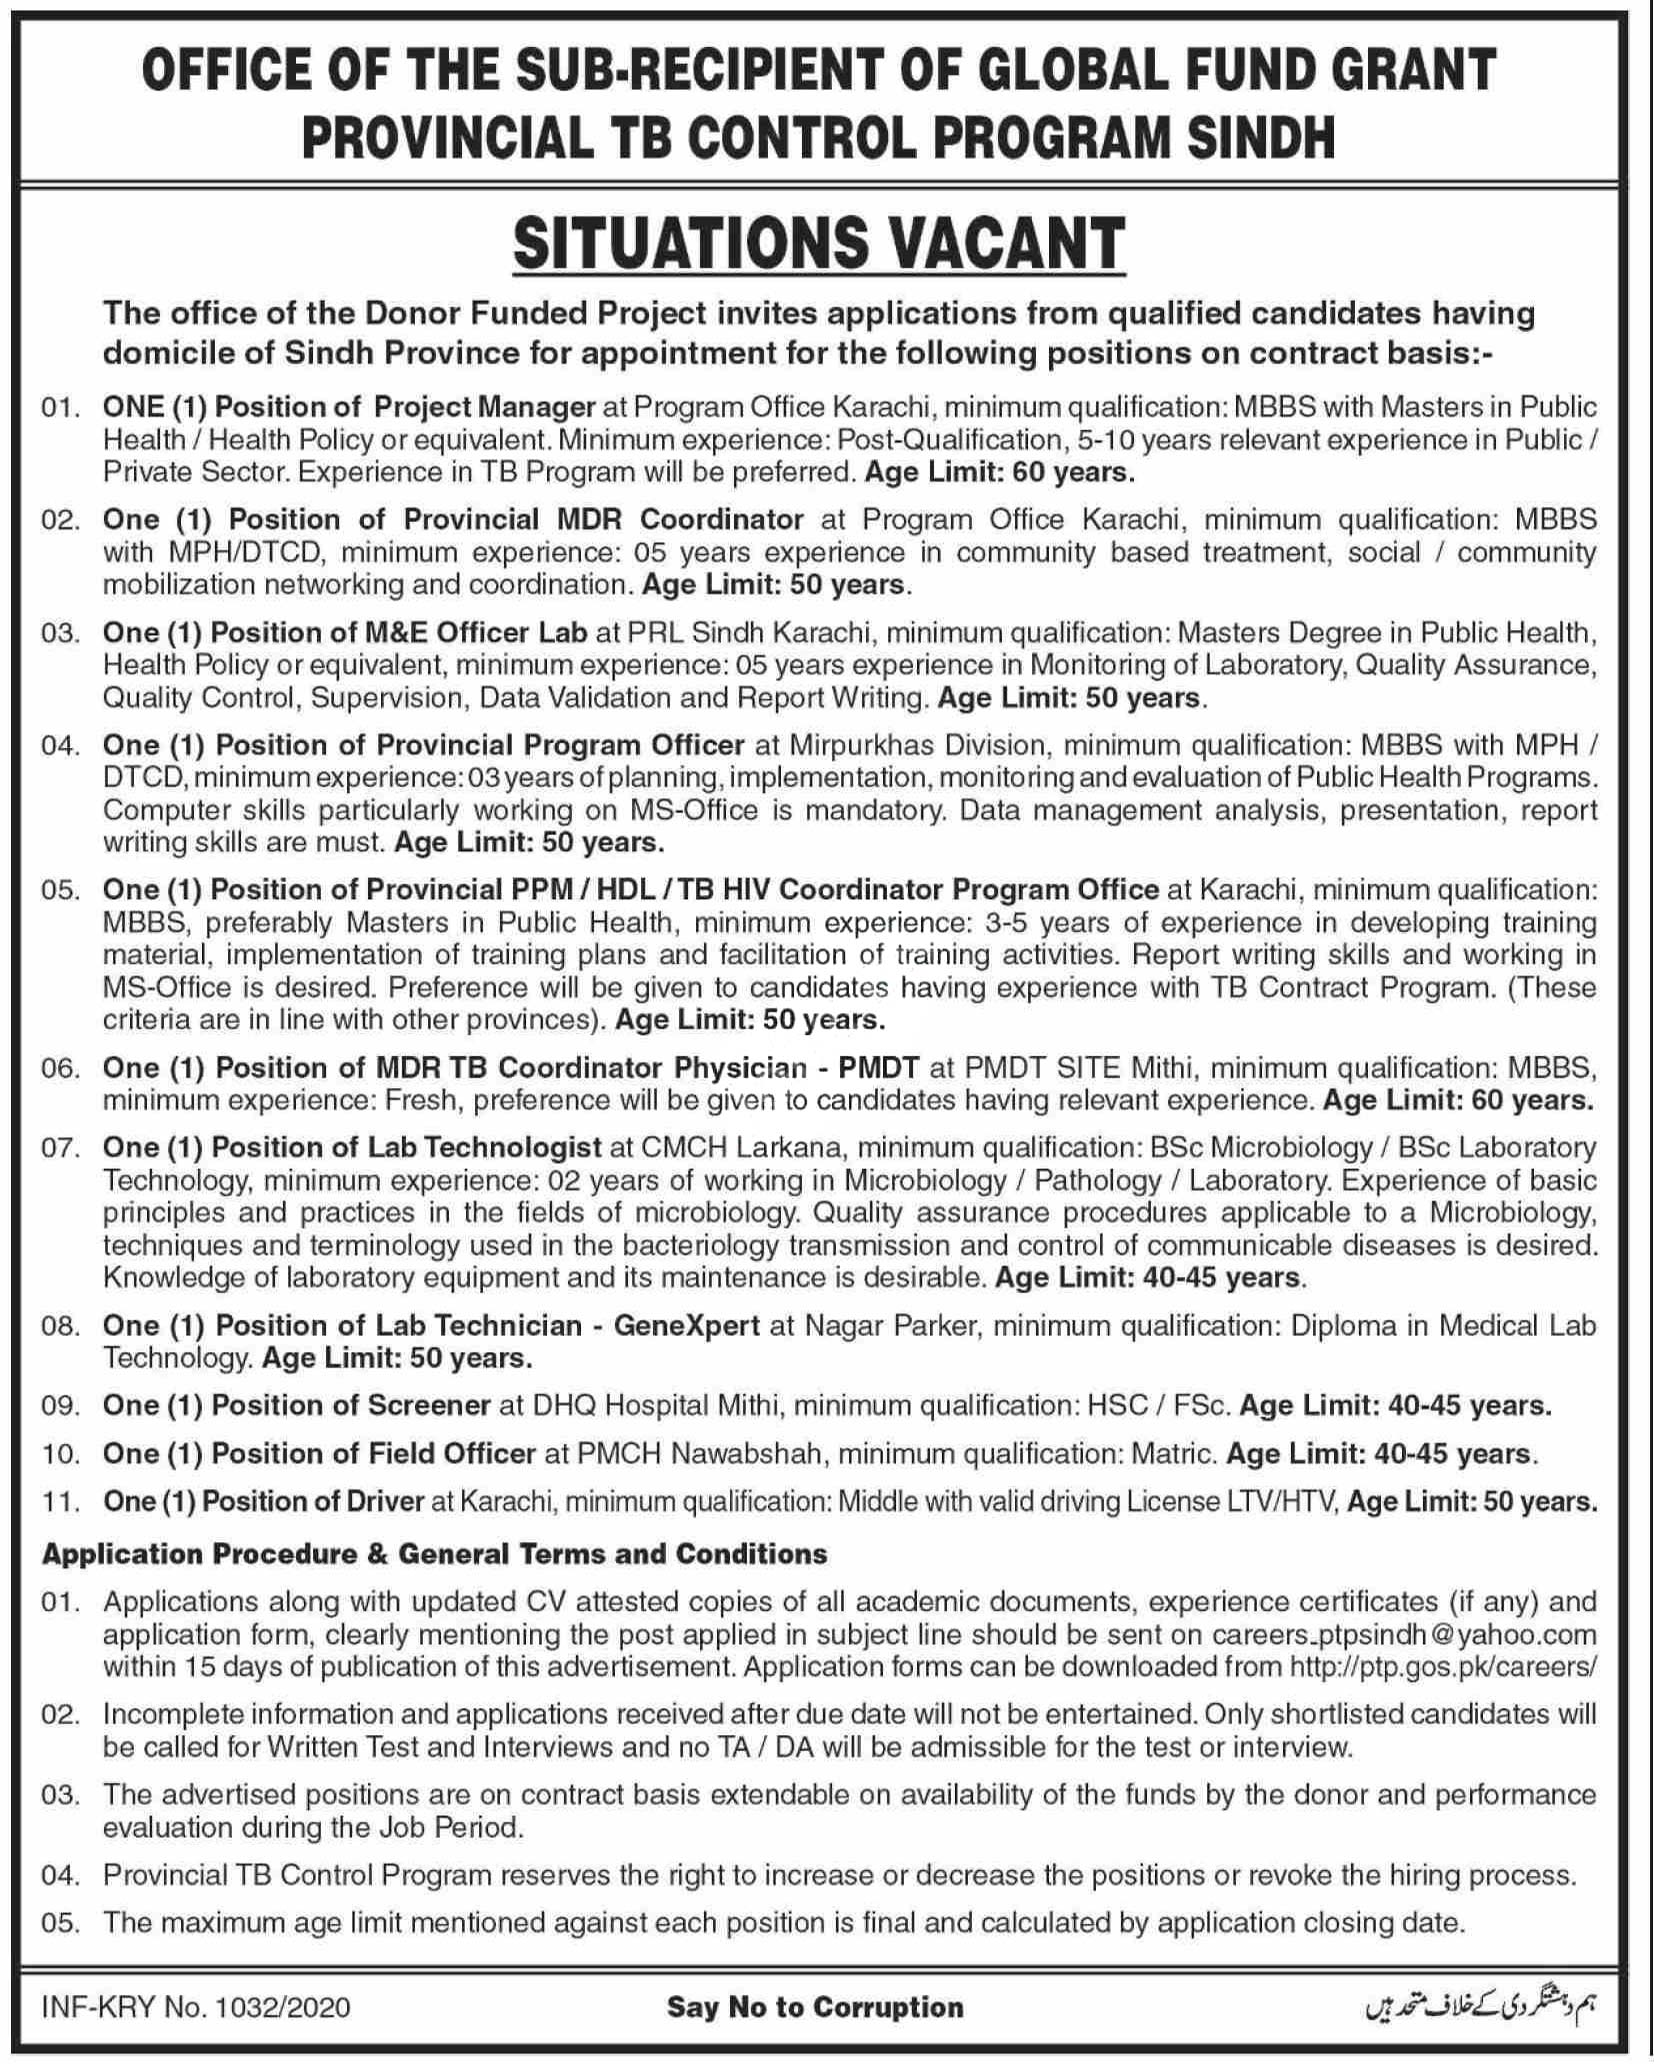 Provincial Tb Control Program Sindh Global Fund Grant Jobs 2020 Latest